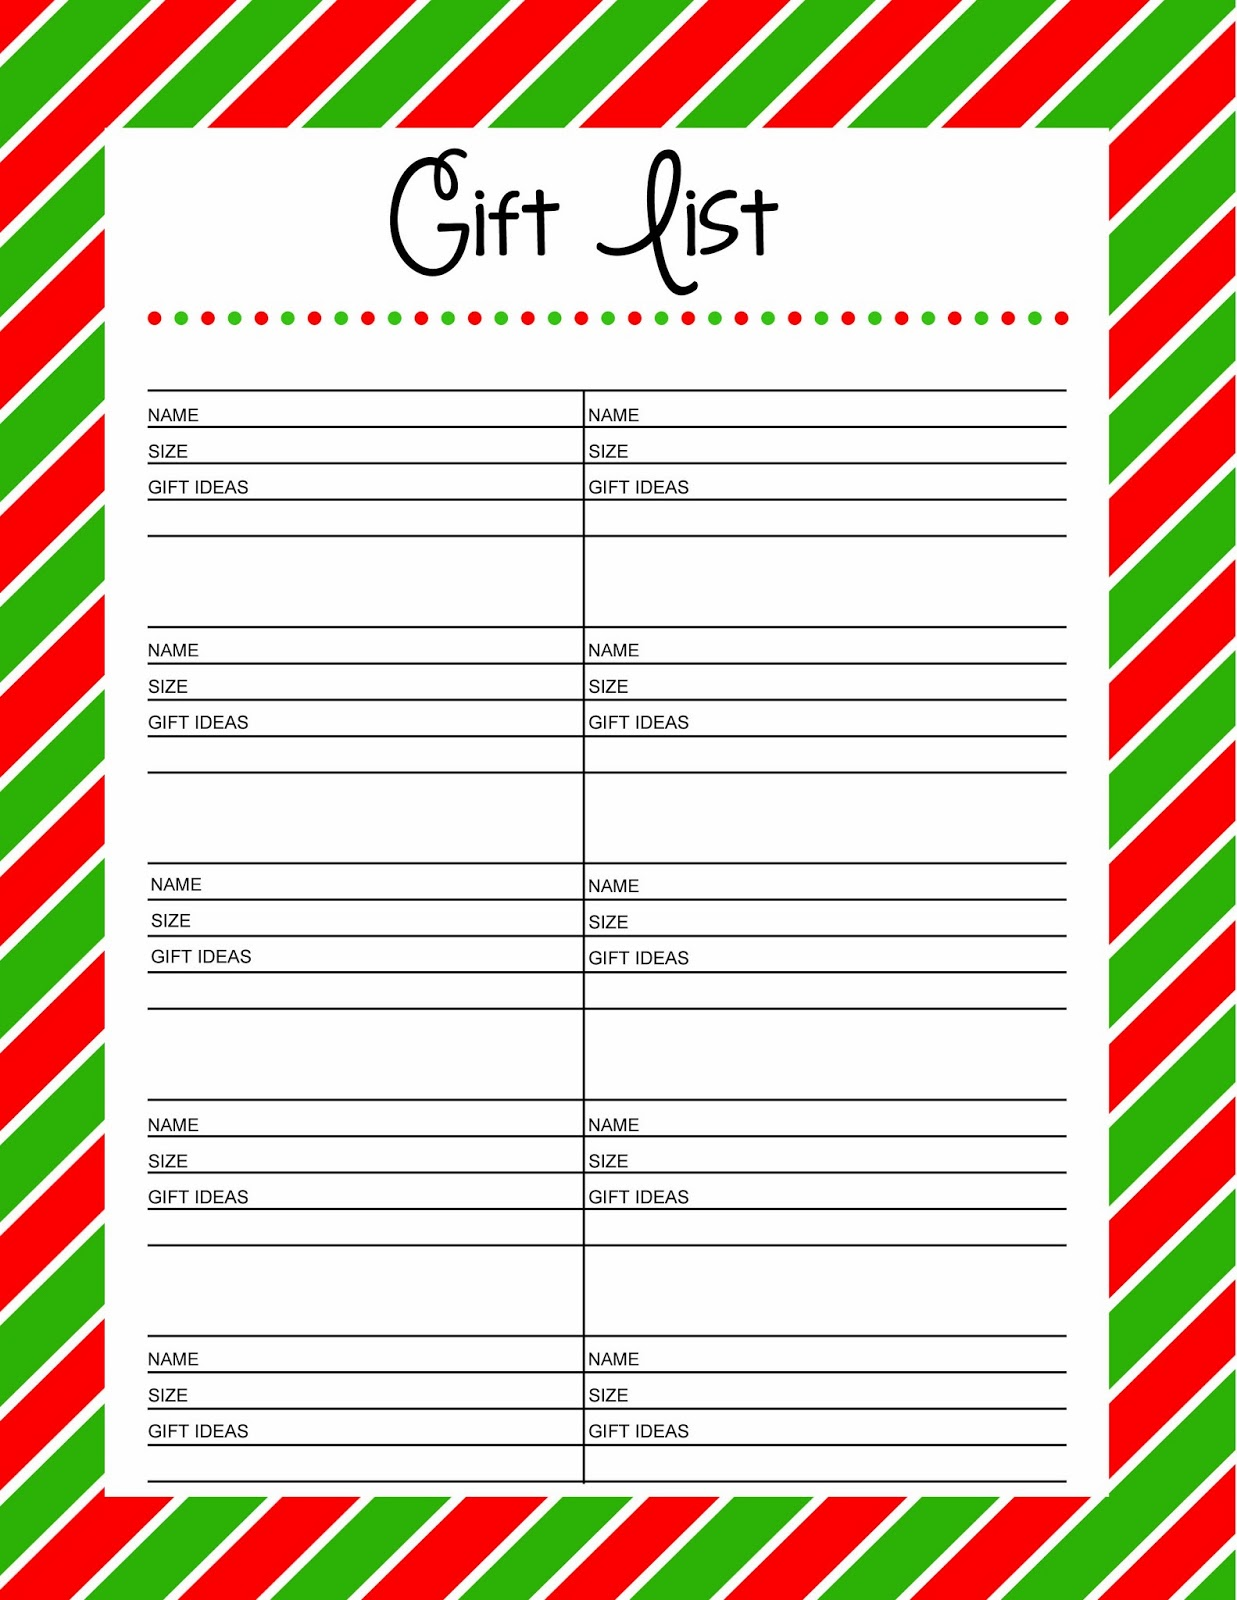 Christmas Gift List Template | Home Decorating, Interior Design